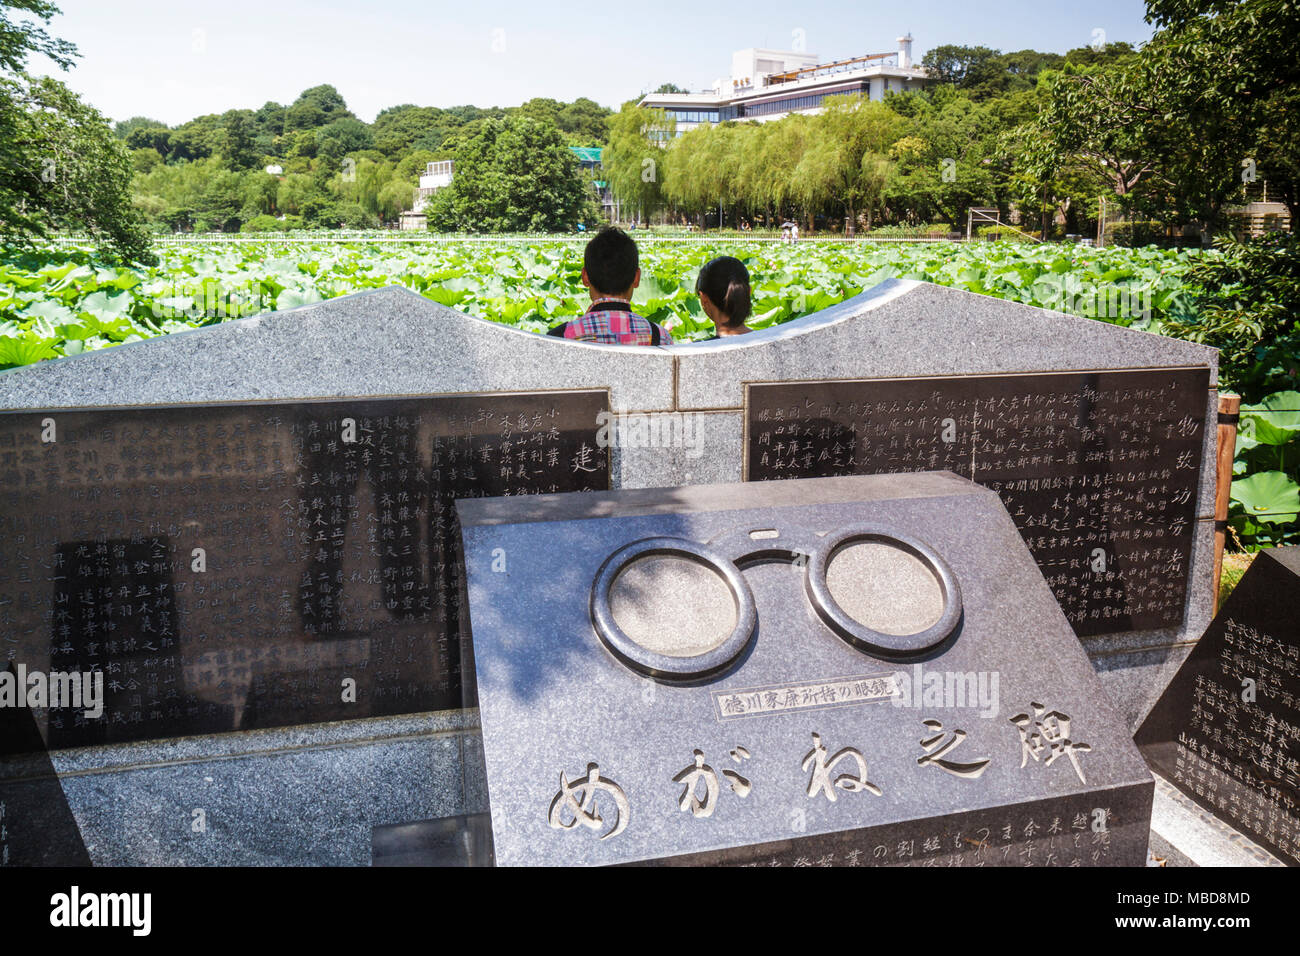 Tokyo Japan Ueno Ueno Park Ueno-koen Shinobazu Pond water lilies flora nature Bentendo Hall shrine memorial man woman couple kan Stock Photo